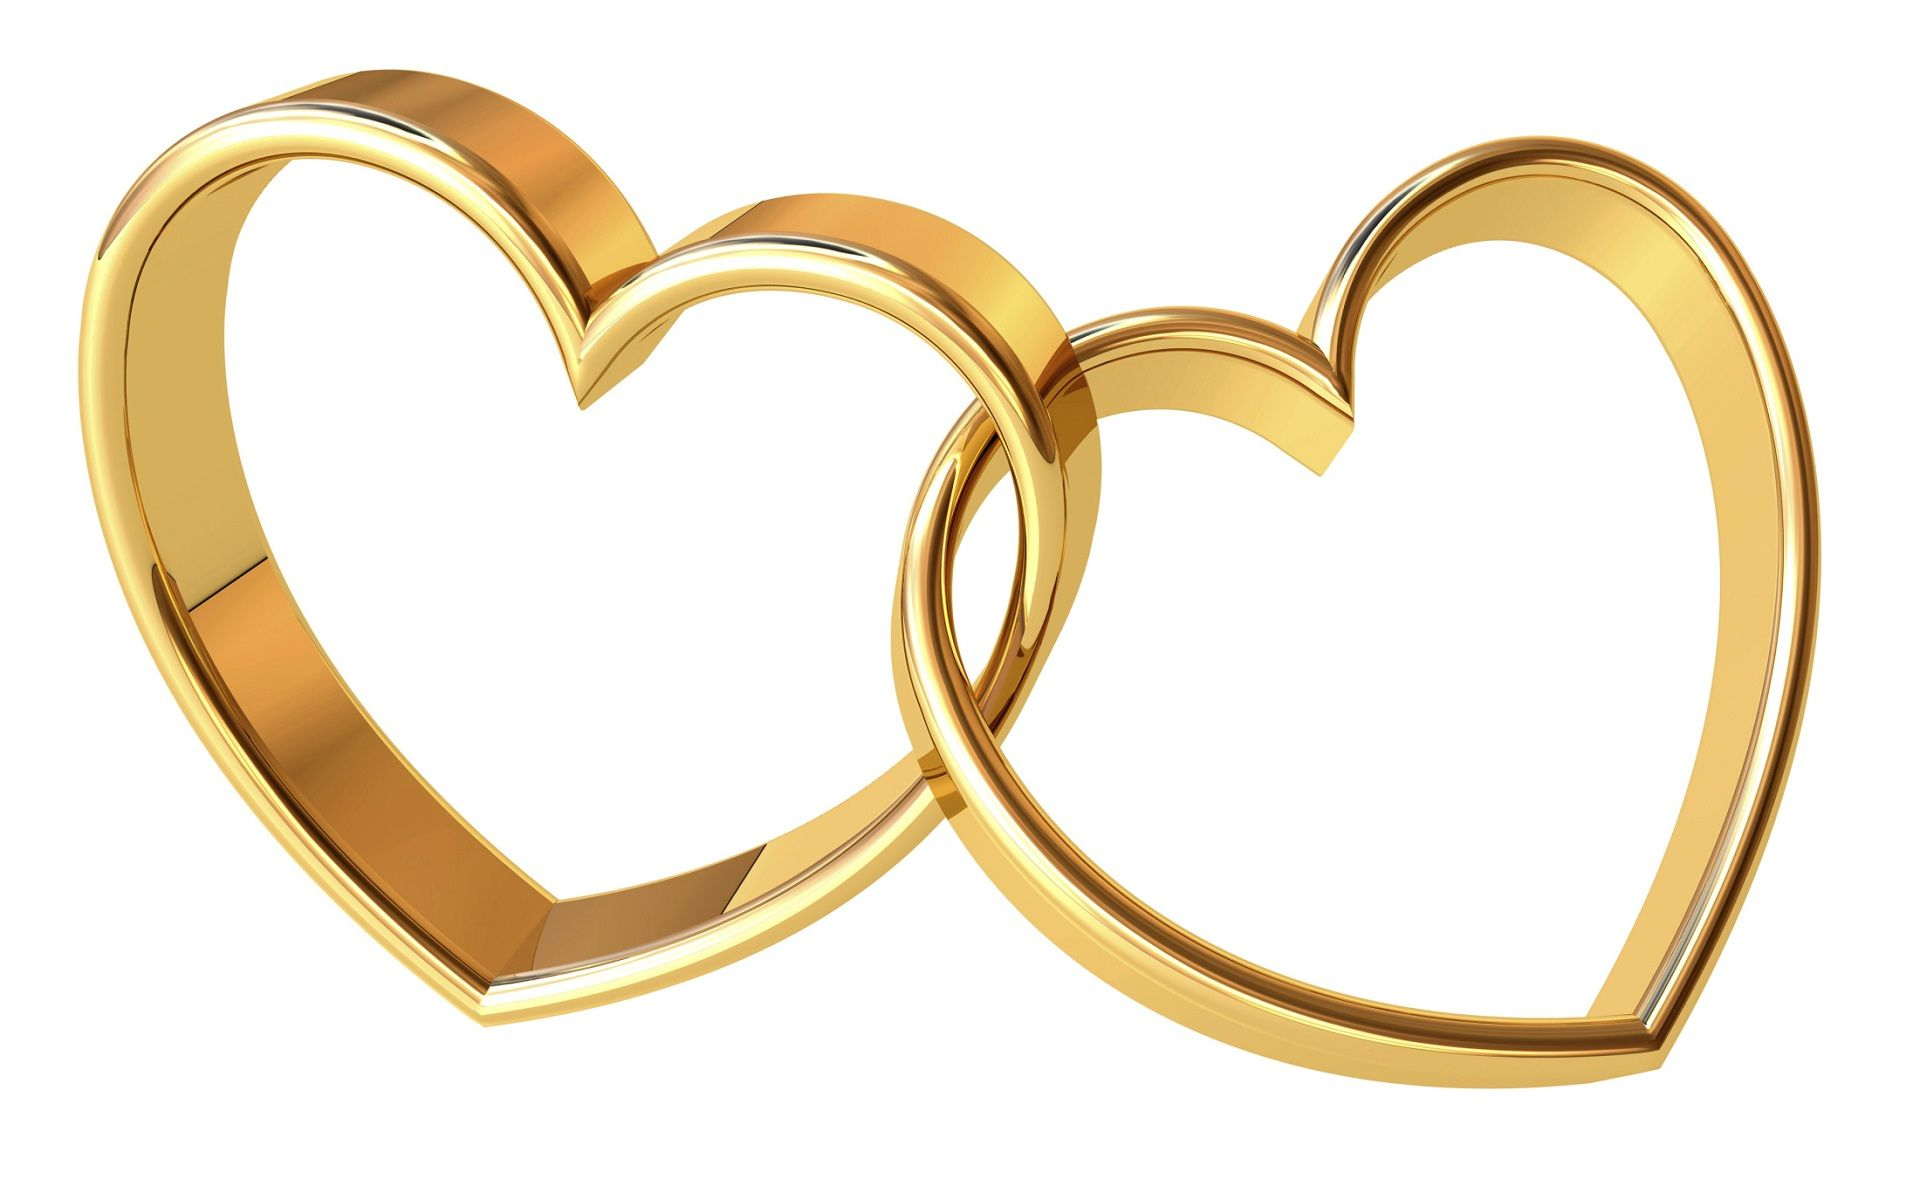 4fc51f4bbcb95 Gold rings heart shape happy anniversary | HD Wallpapers Rocks ...